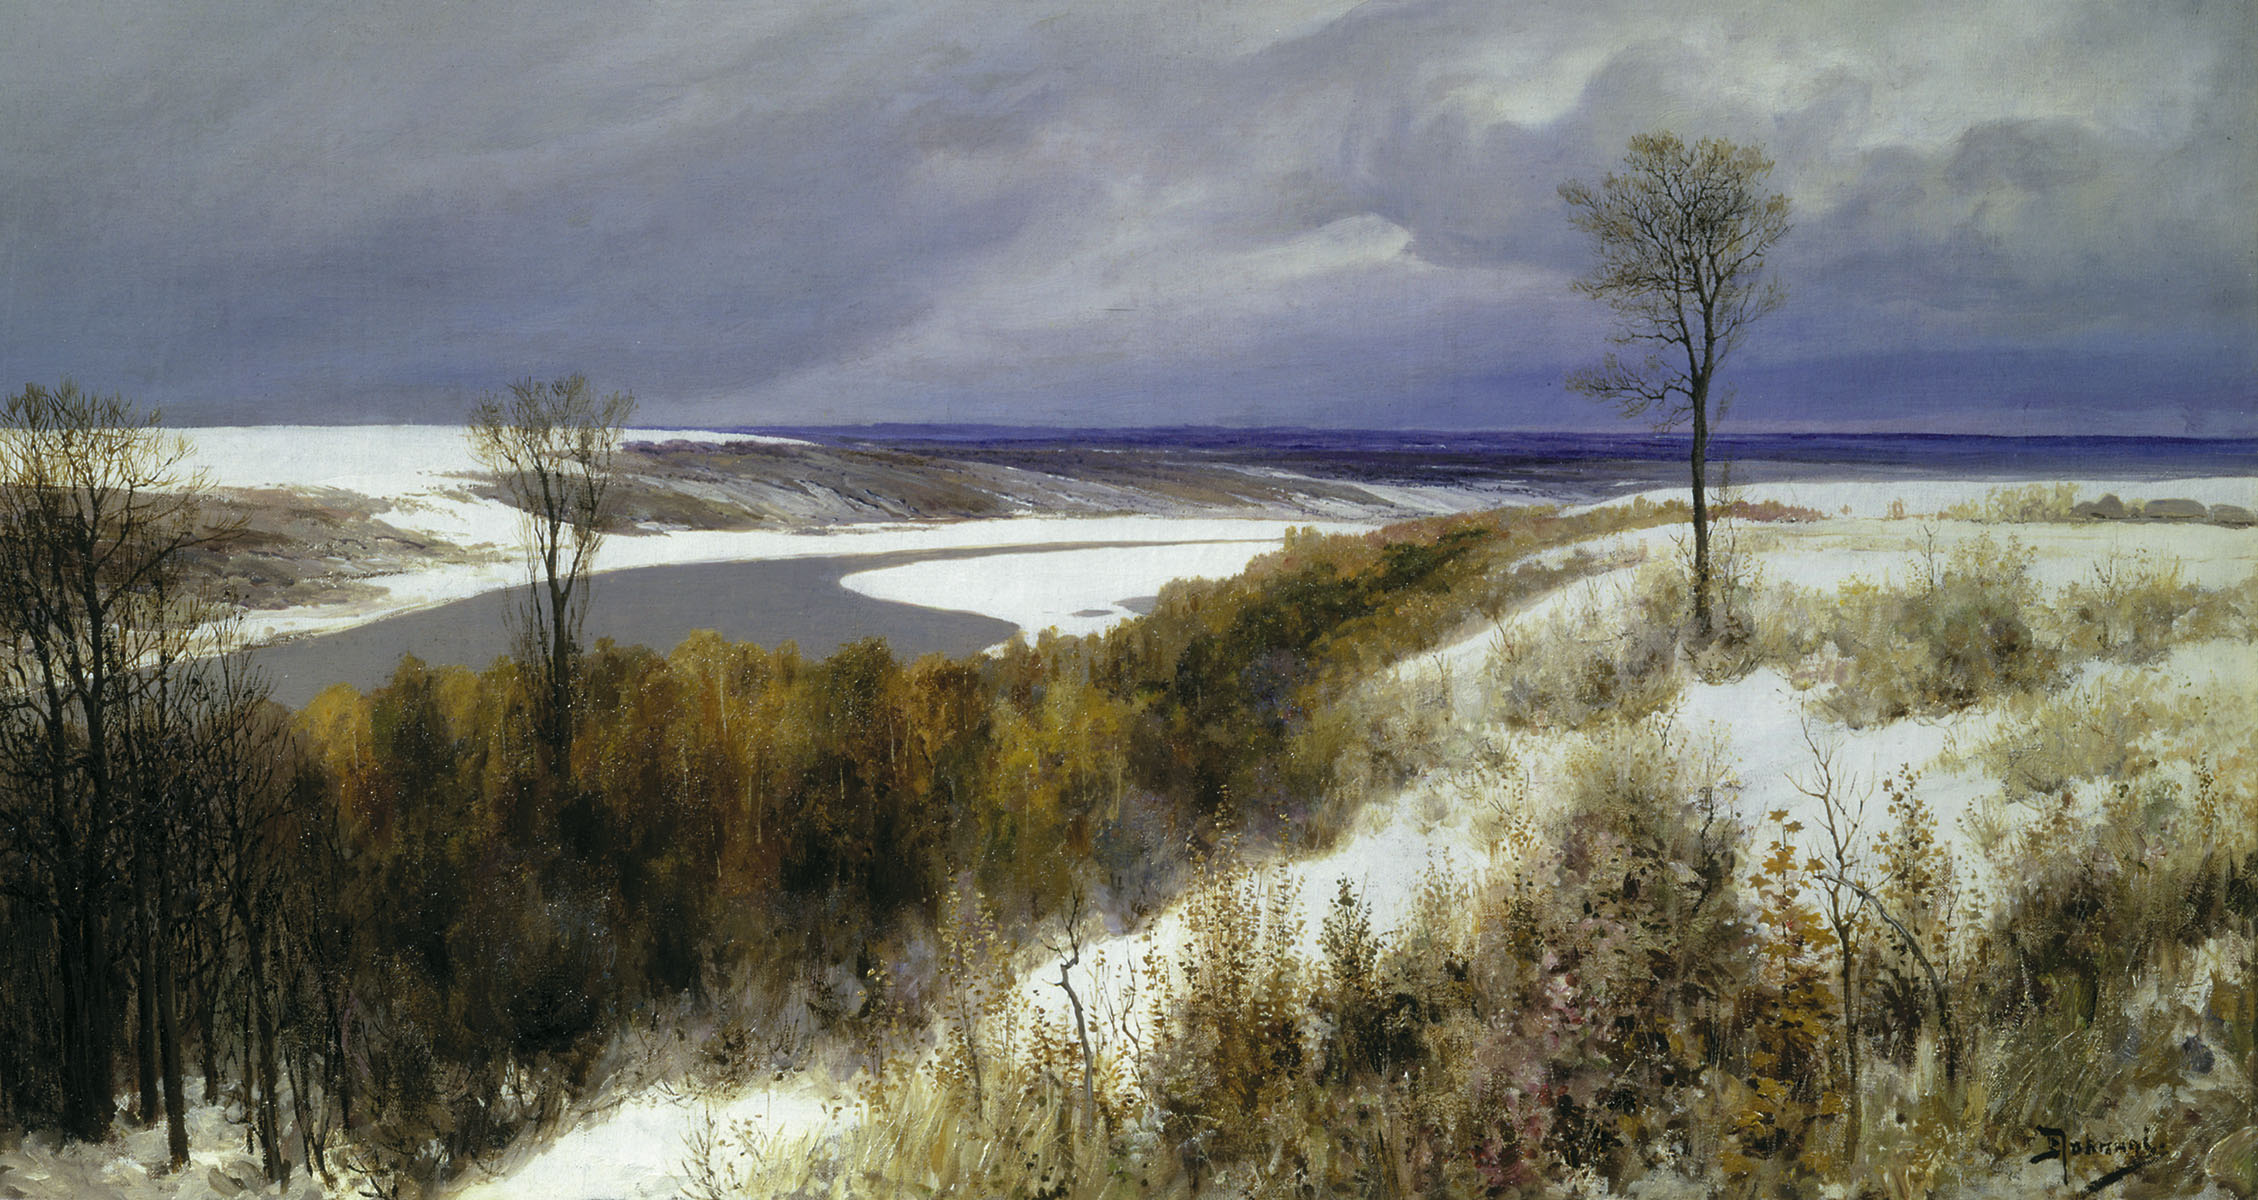 Vasily Polenov - Early snow, oil on canvas, (1891)